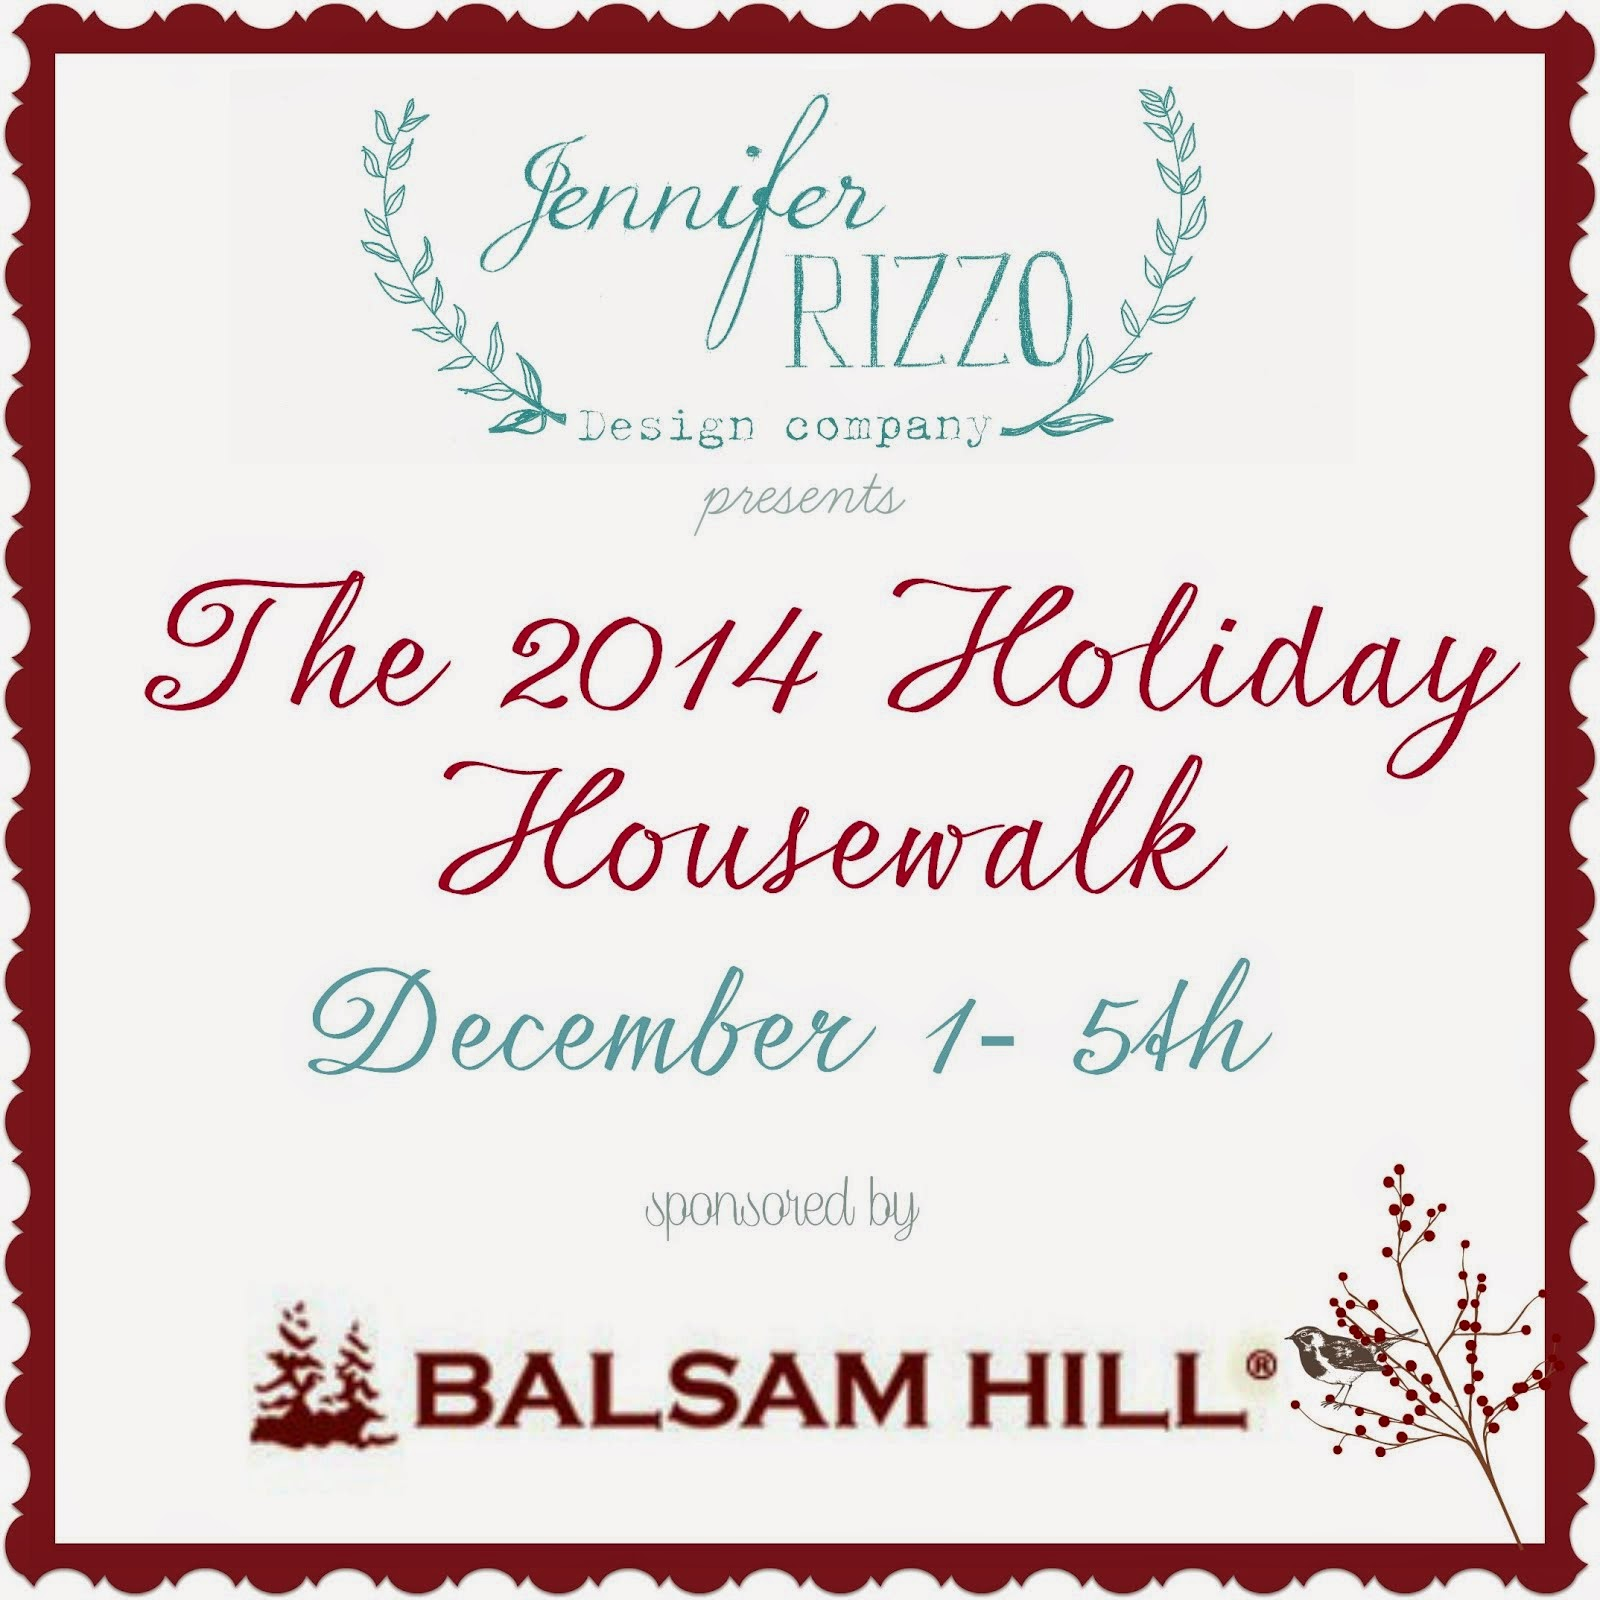 Jennifer Rizzo's Holiday House Walk - 2014